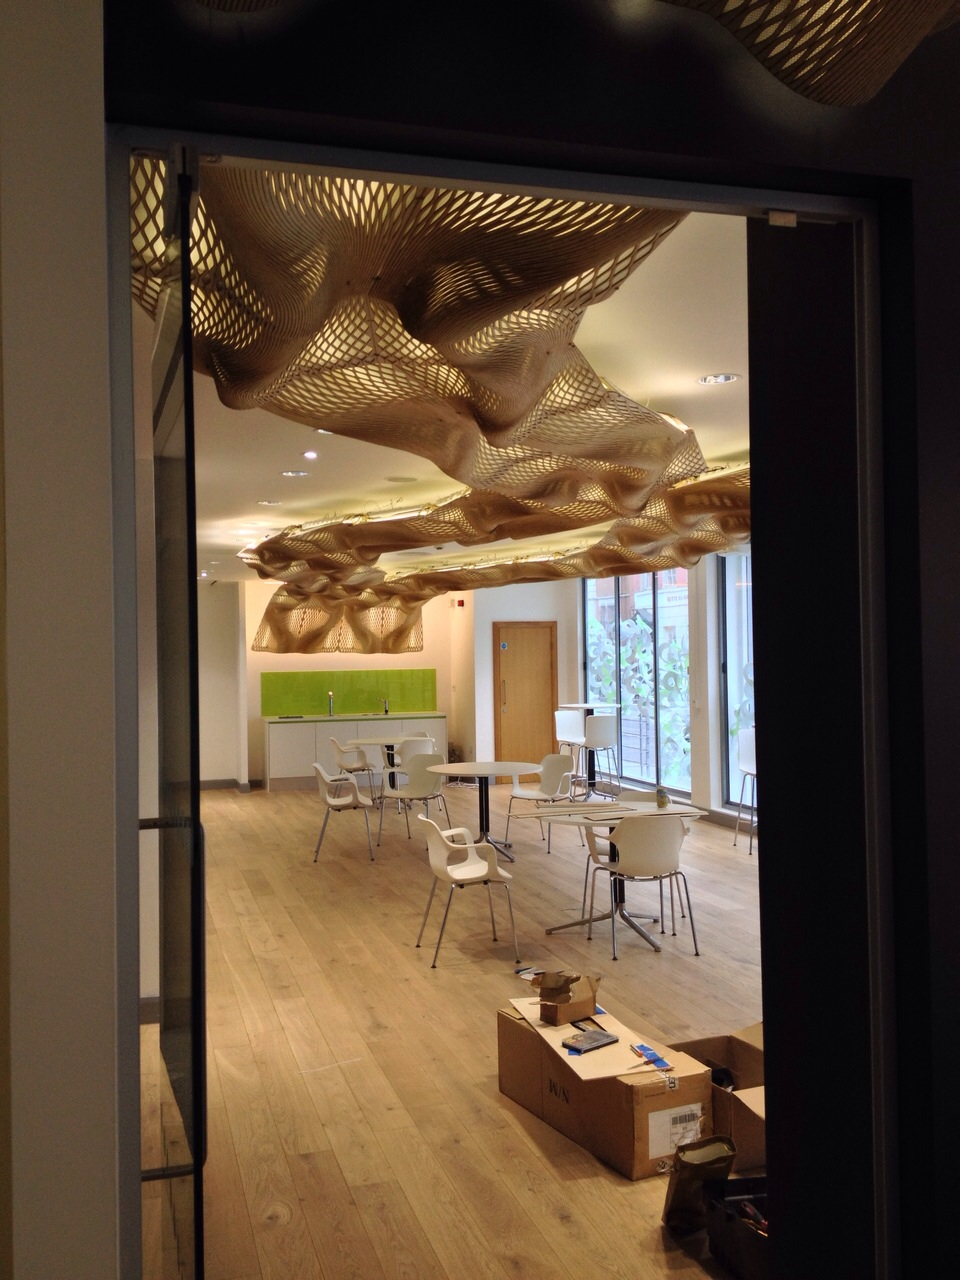 The Wooden Waves - Buro Happold - The ceiling Installation at 71 Newman Street - Picture by Dr. Bilal Mian ©Mamou-Mani